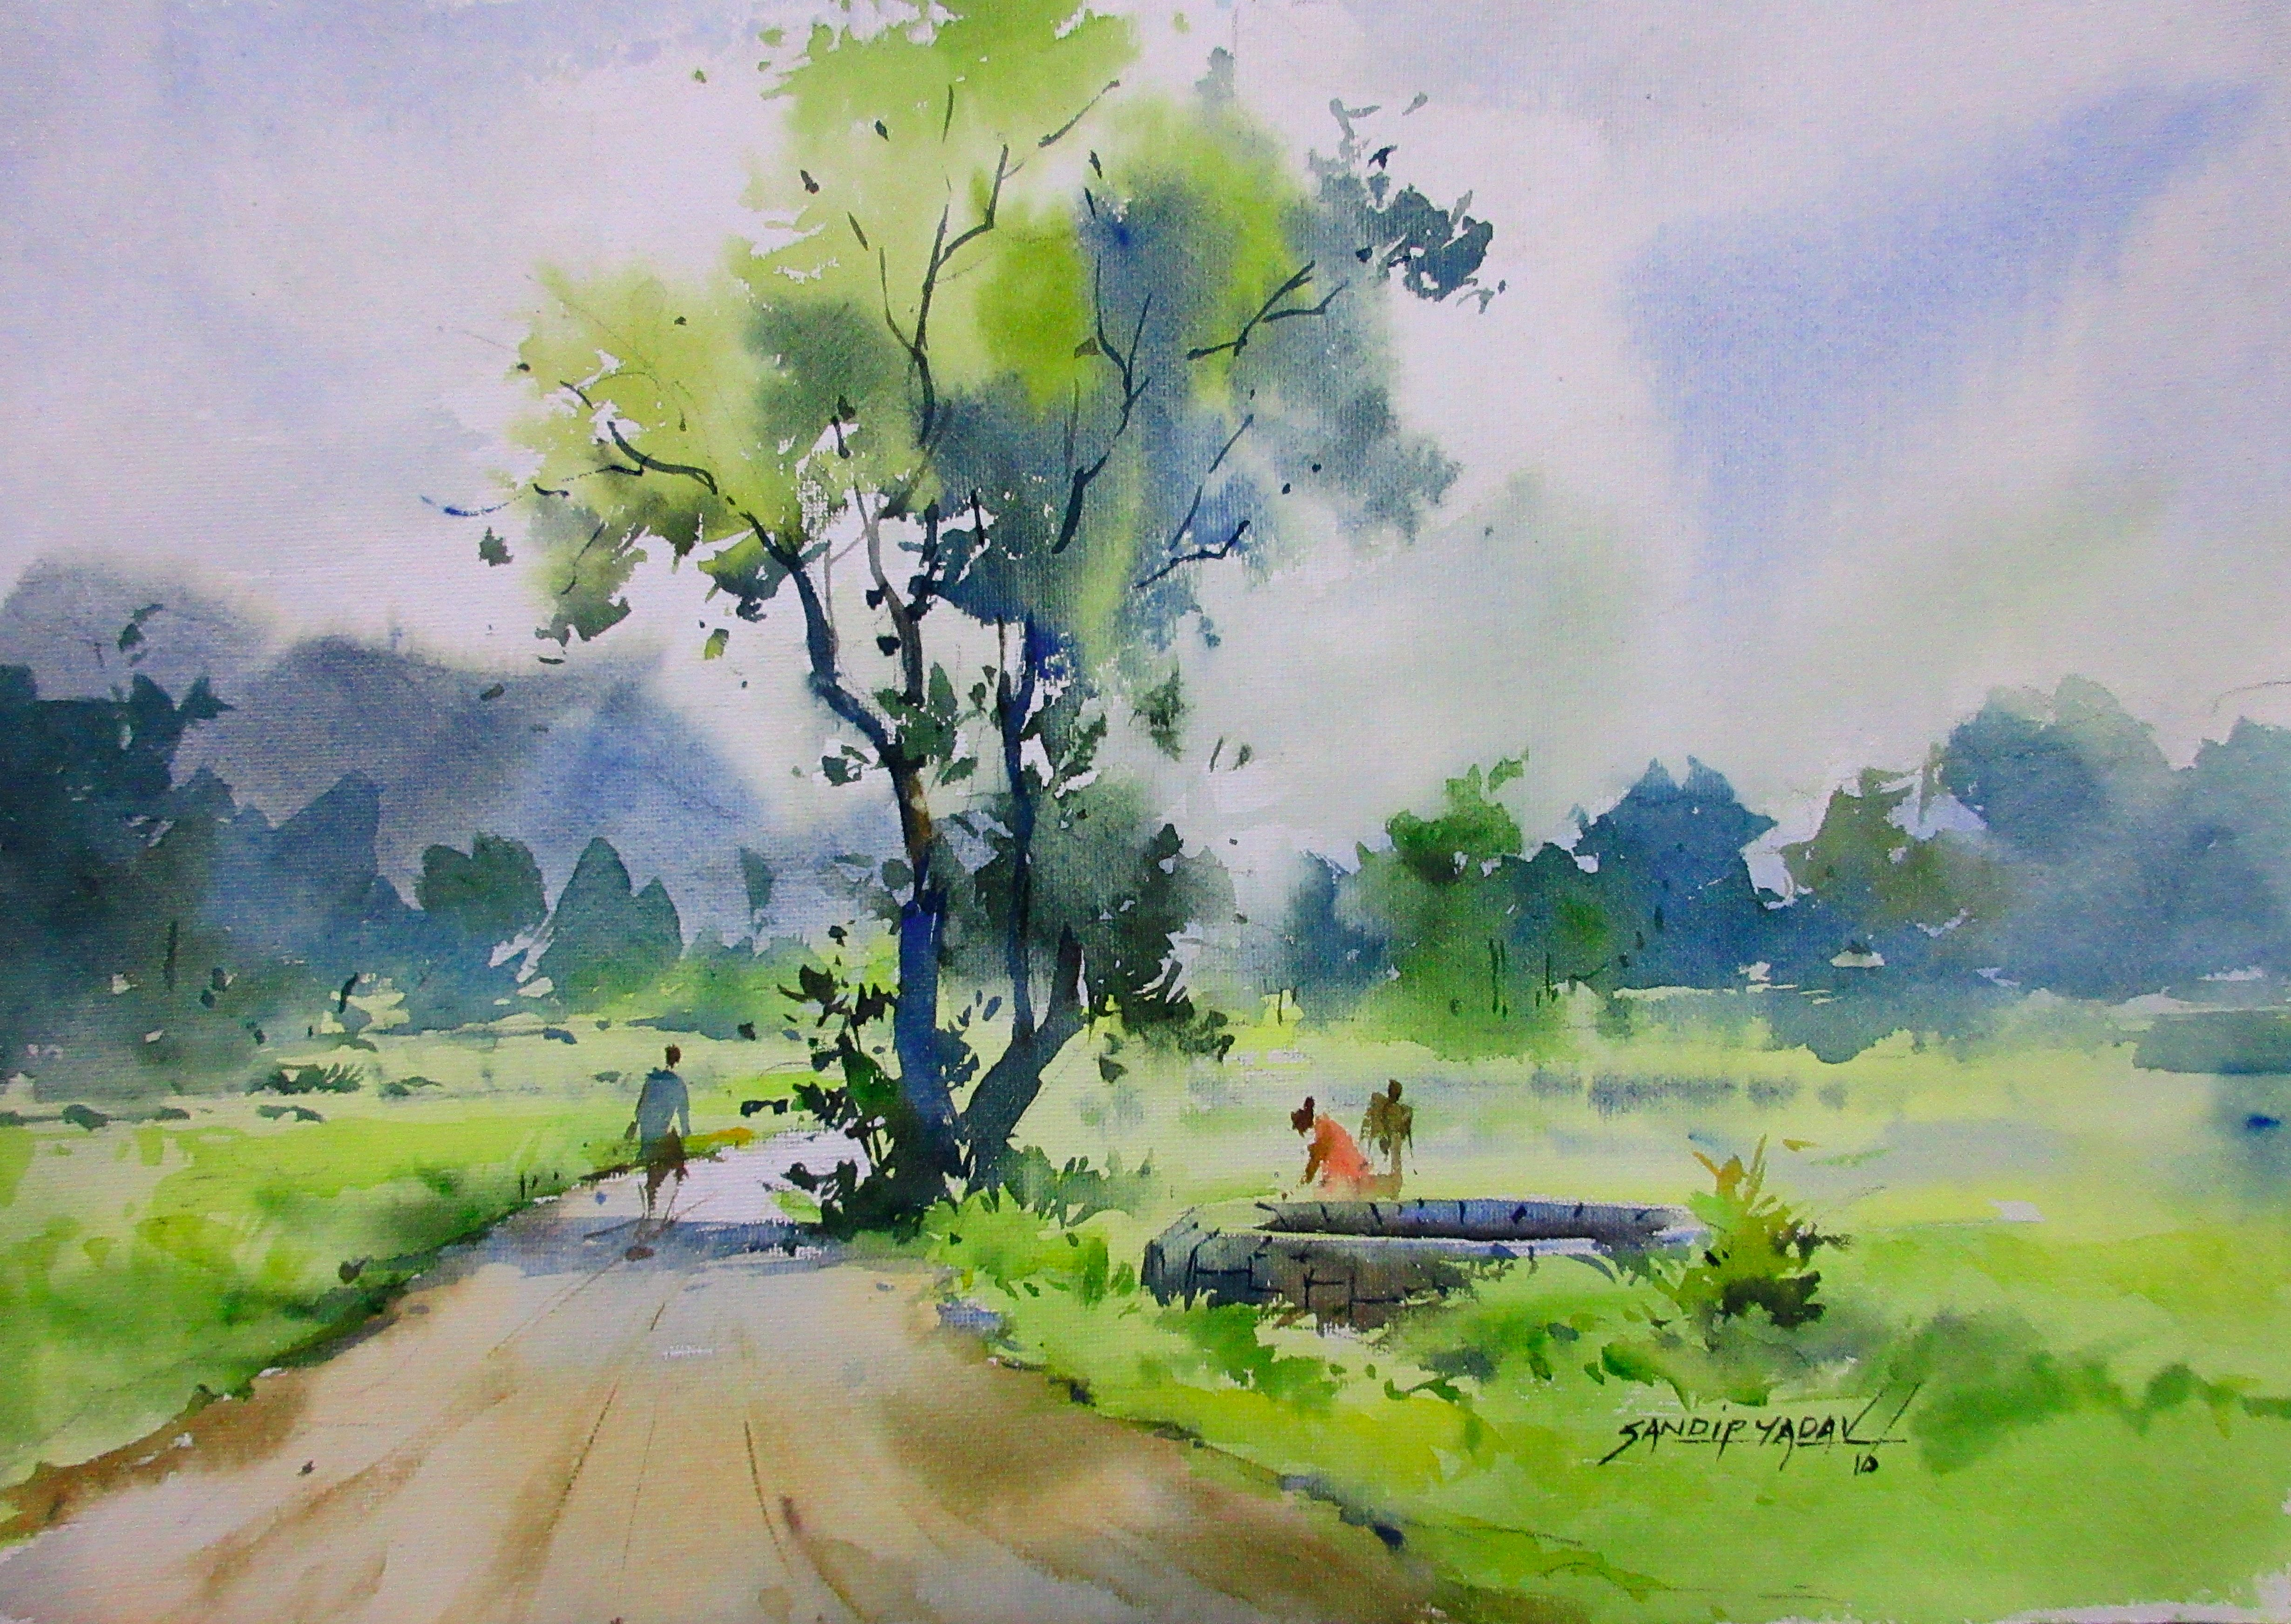 Pin By Sandeep Yadav On My Paintings Watercolor Landscape